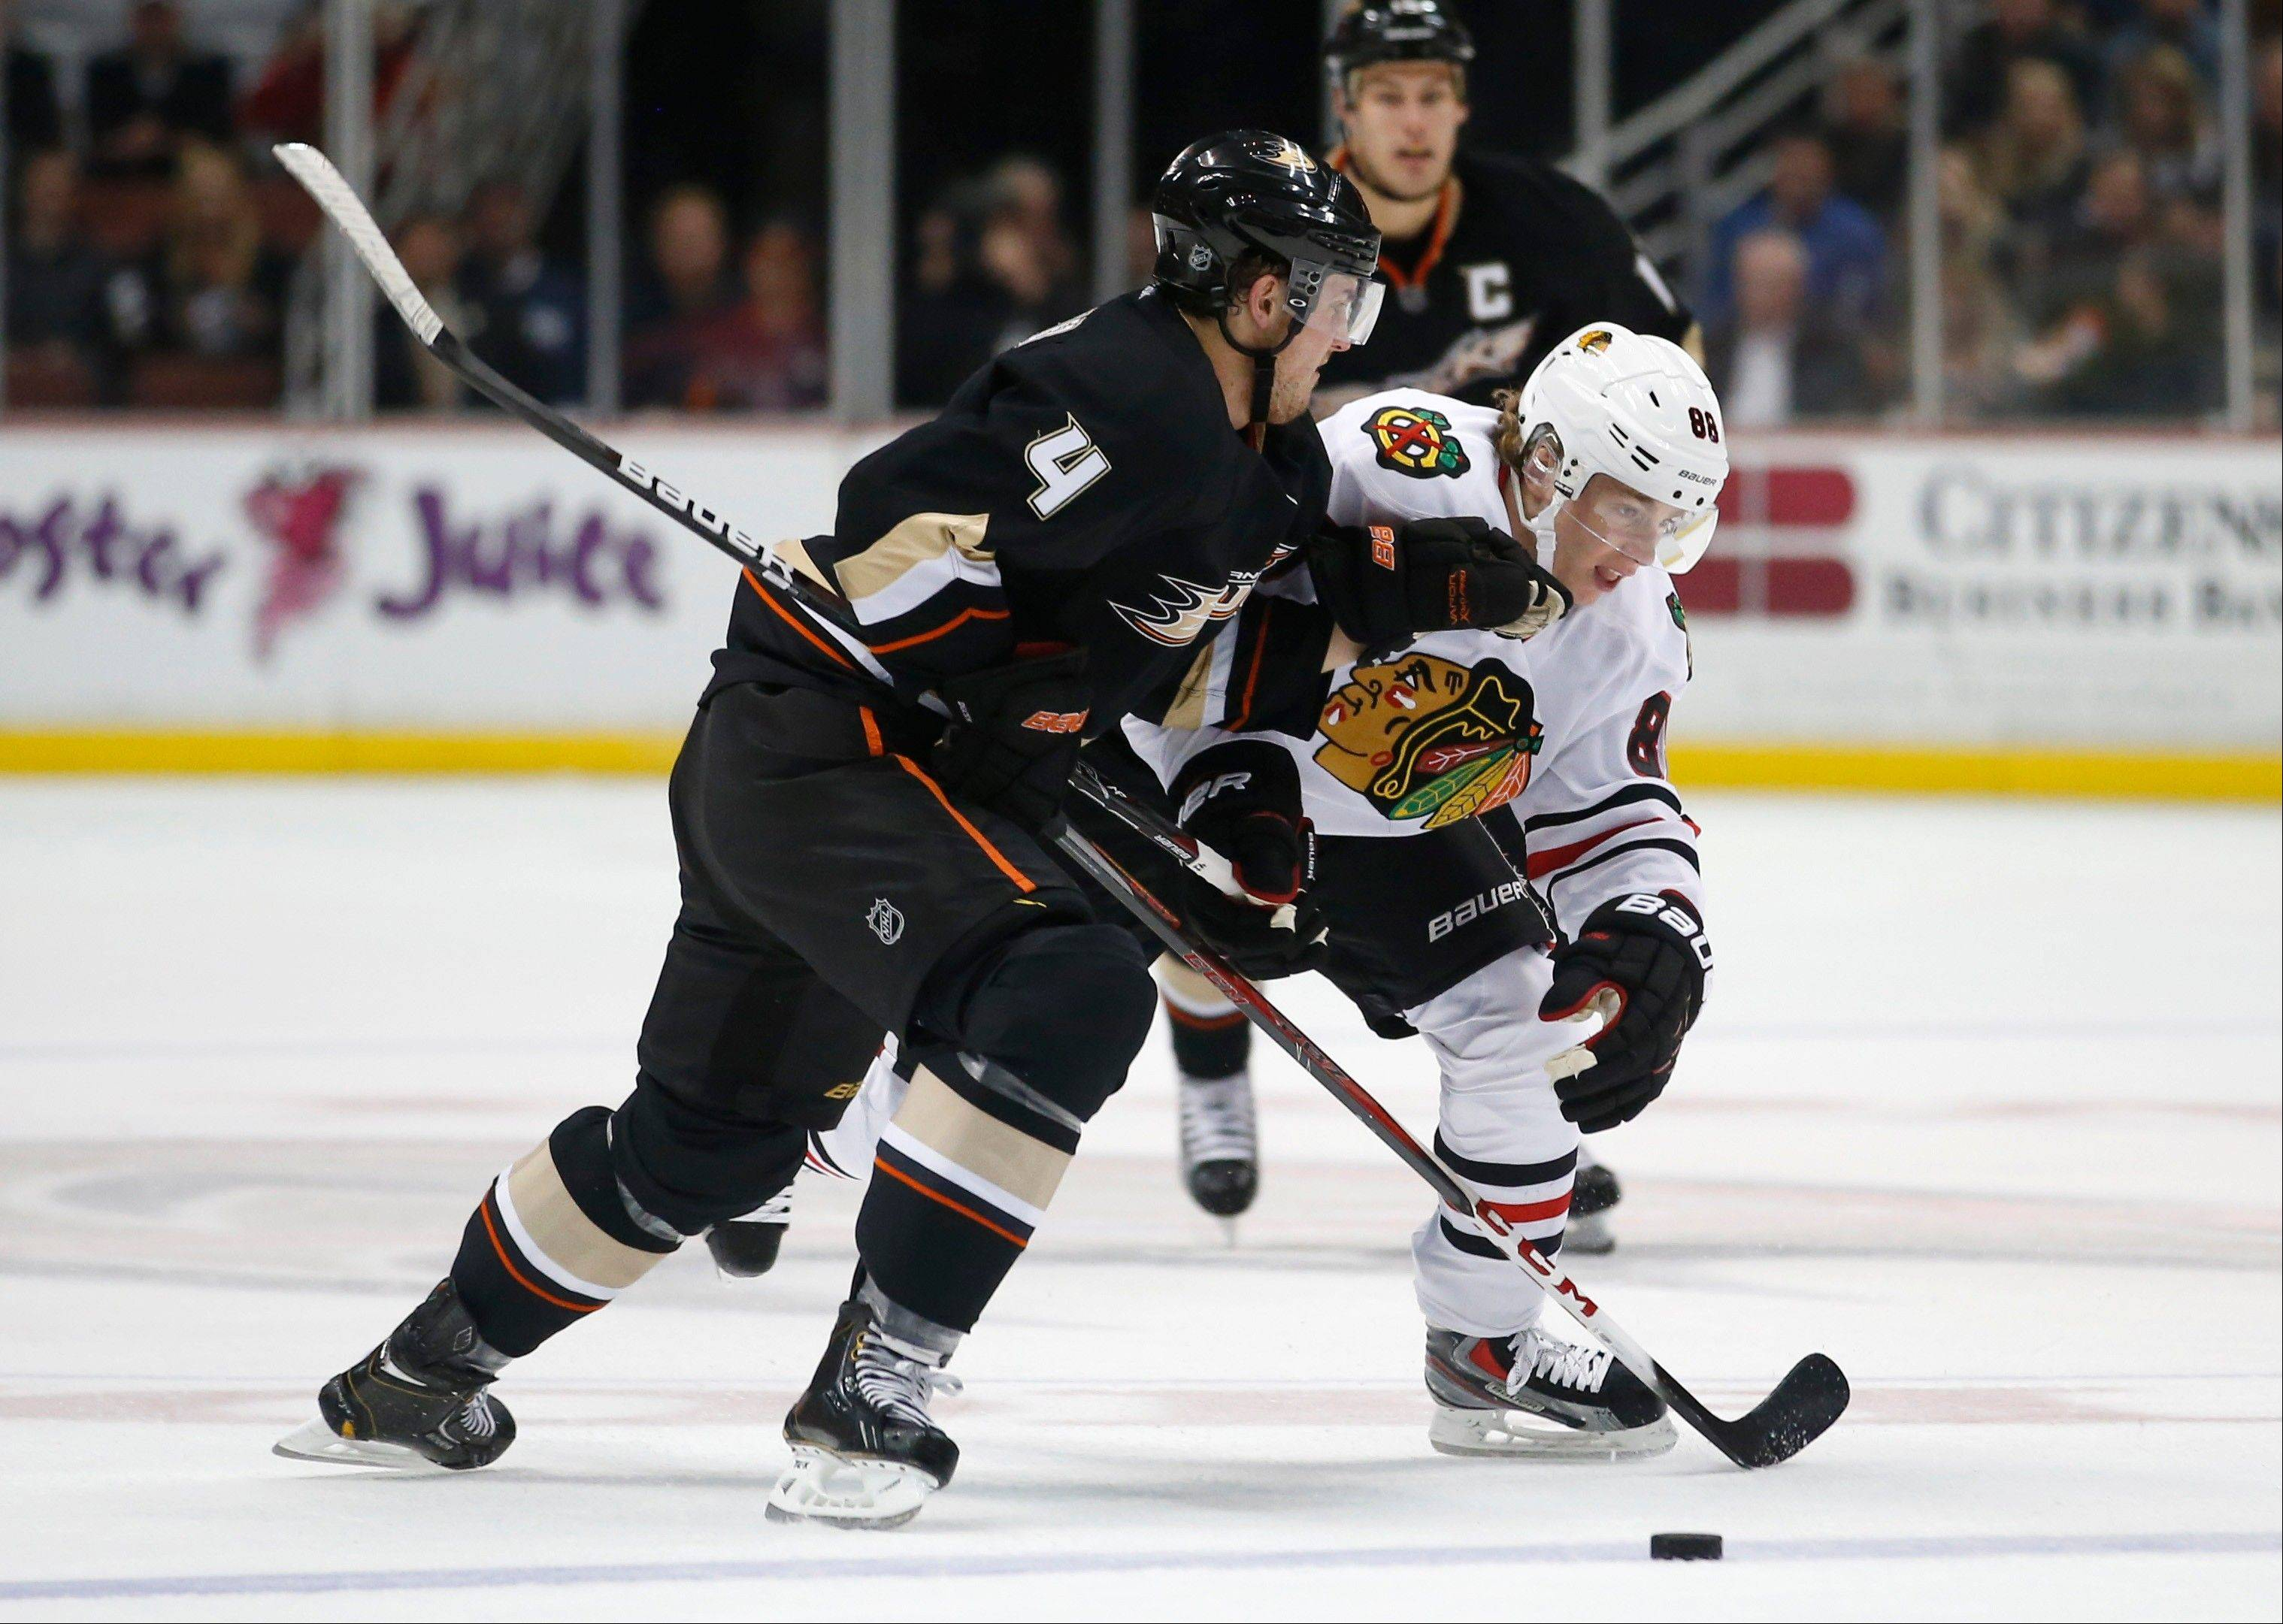 Quenneville defends use of Kane while Carcillo sits